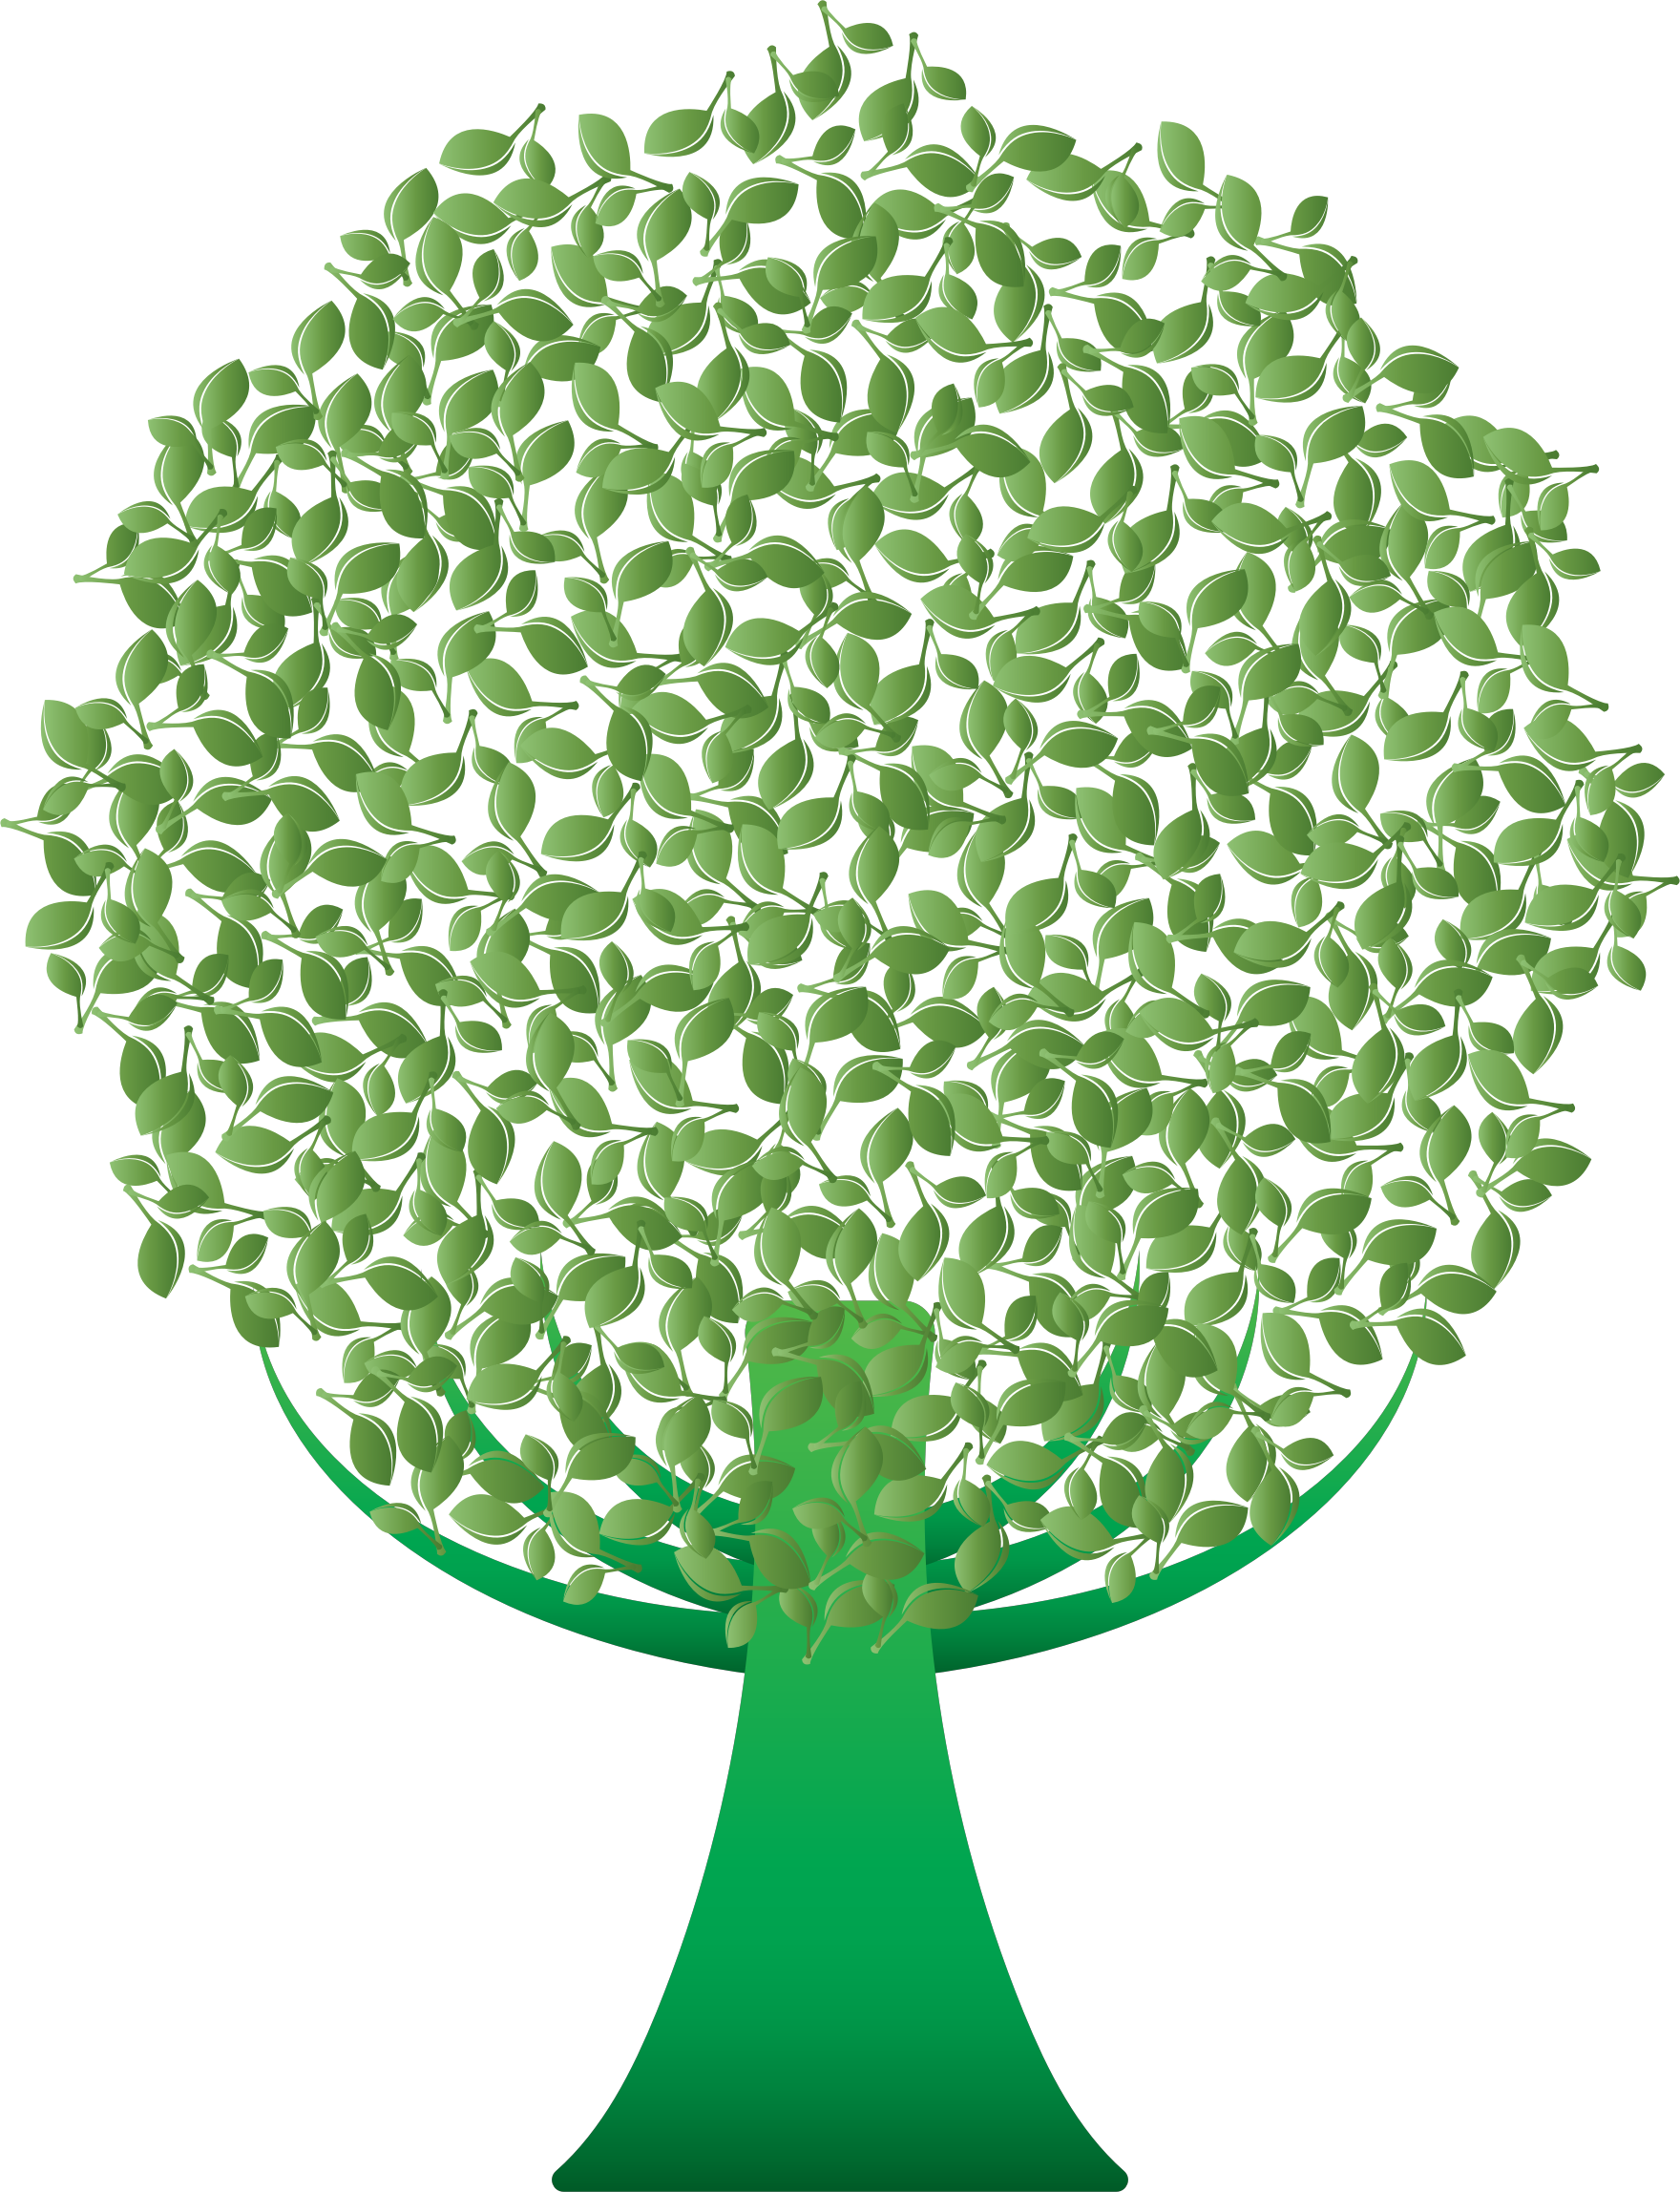 Abstract green png. Tree icons free and